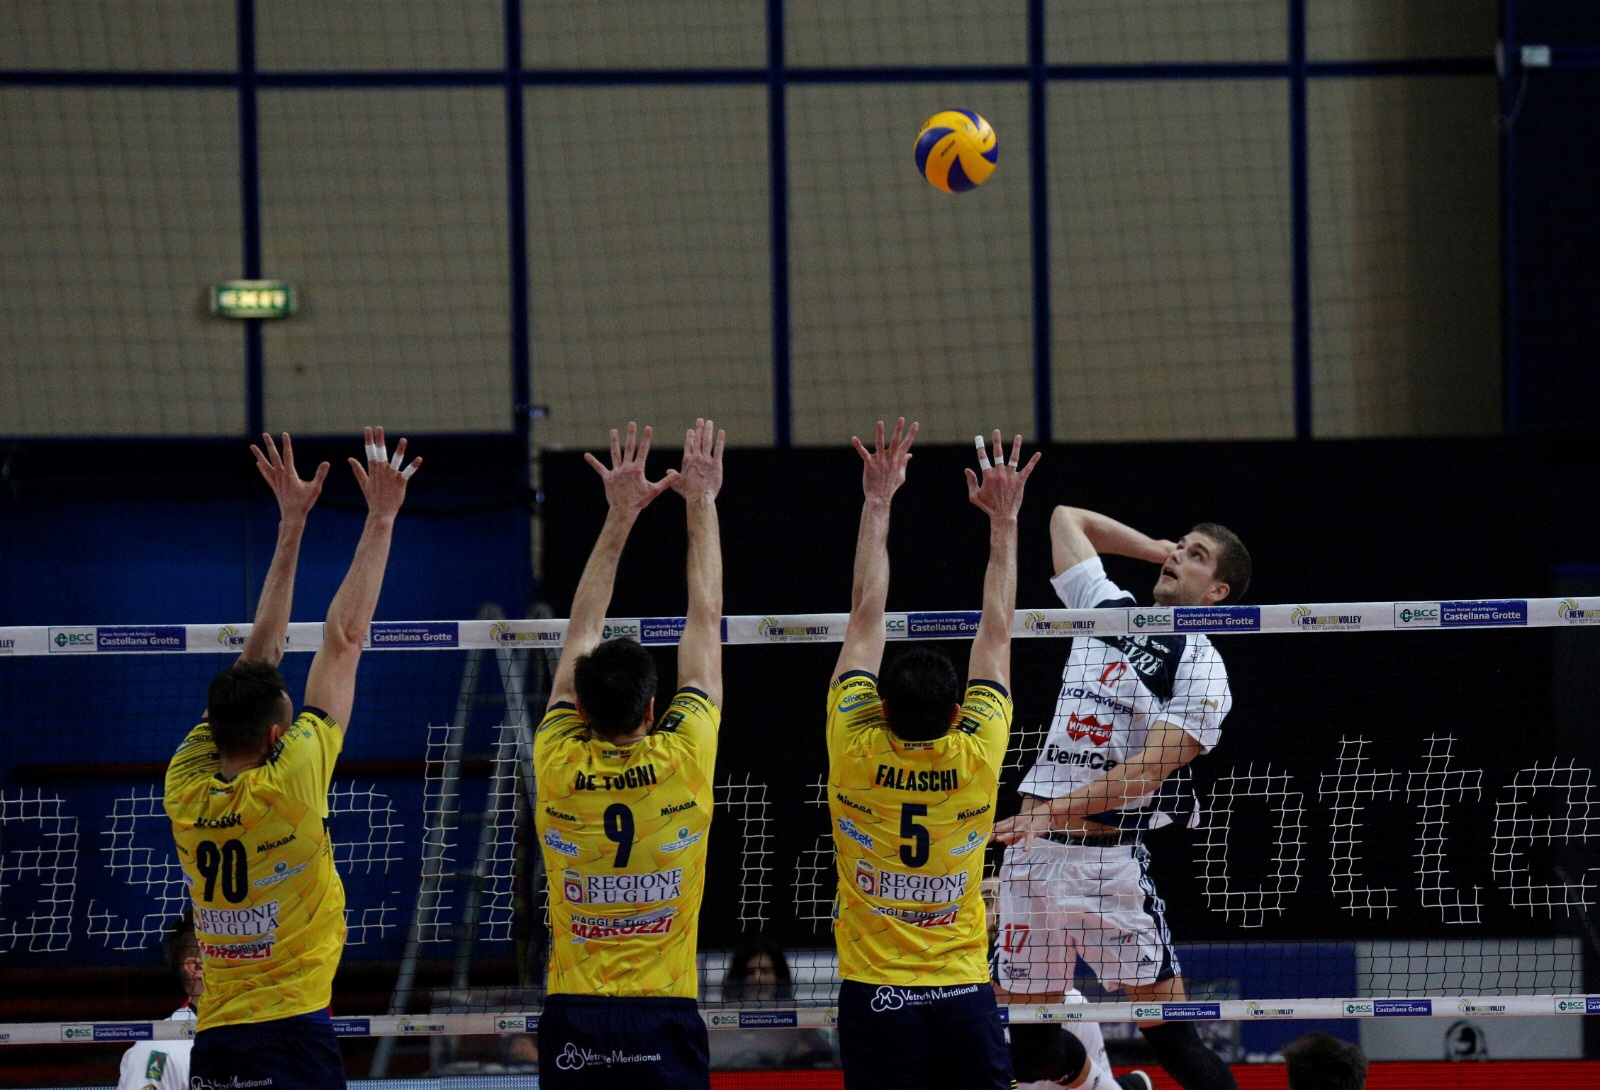 #Superlega: Fifth victory for Milan. Victory at tie break in Castellana Grotte in the advance of round 18.